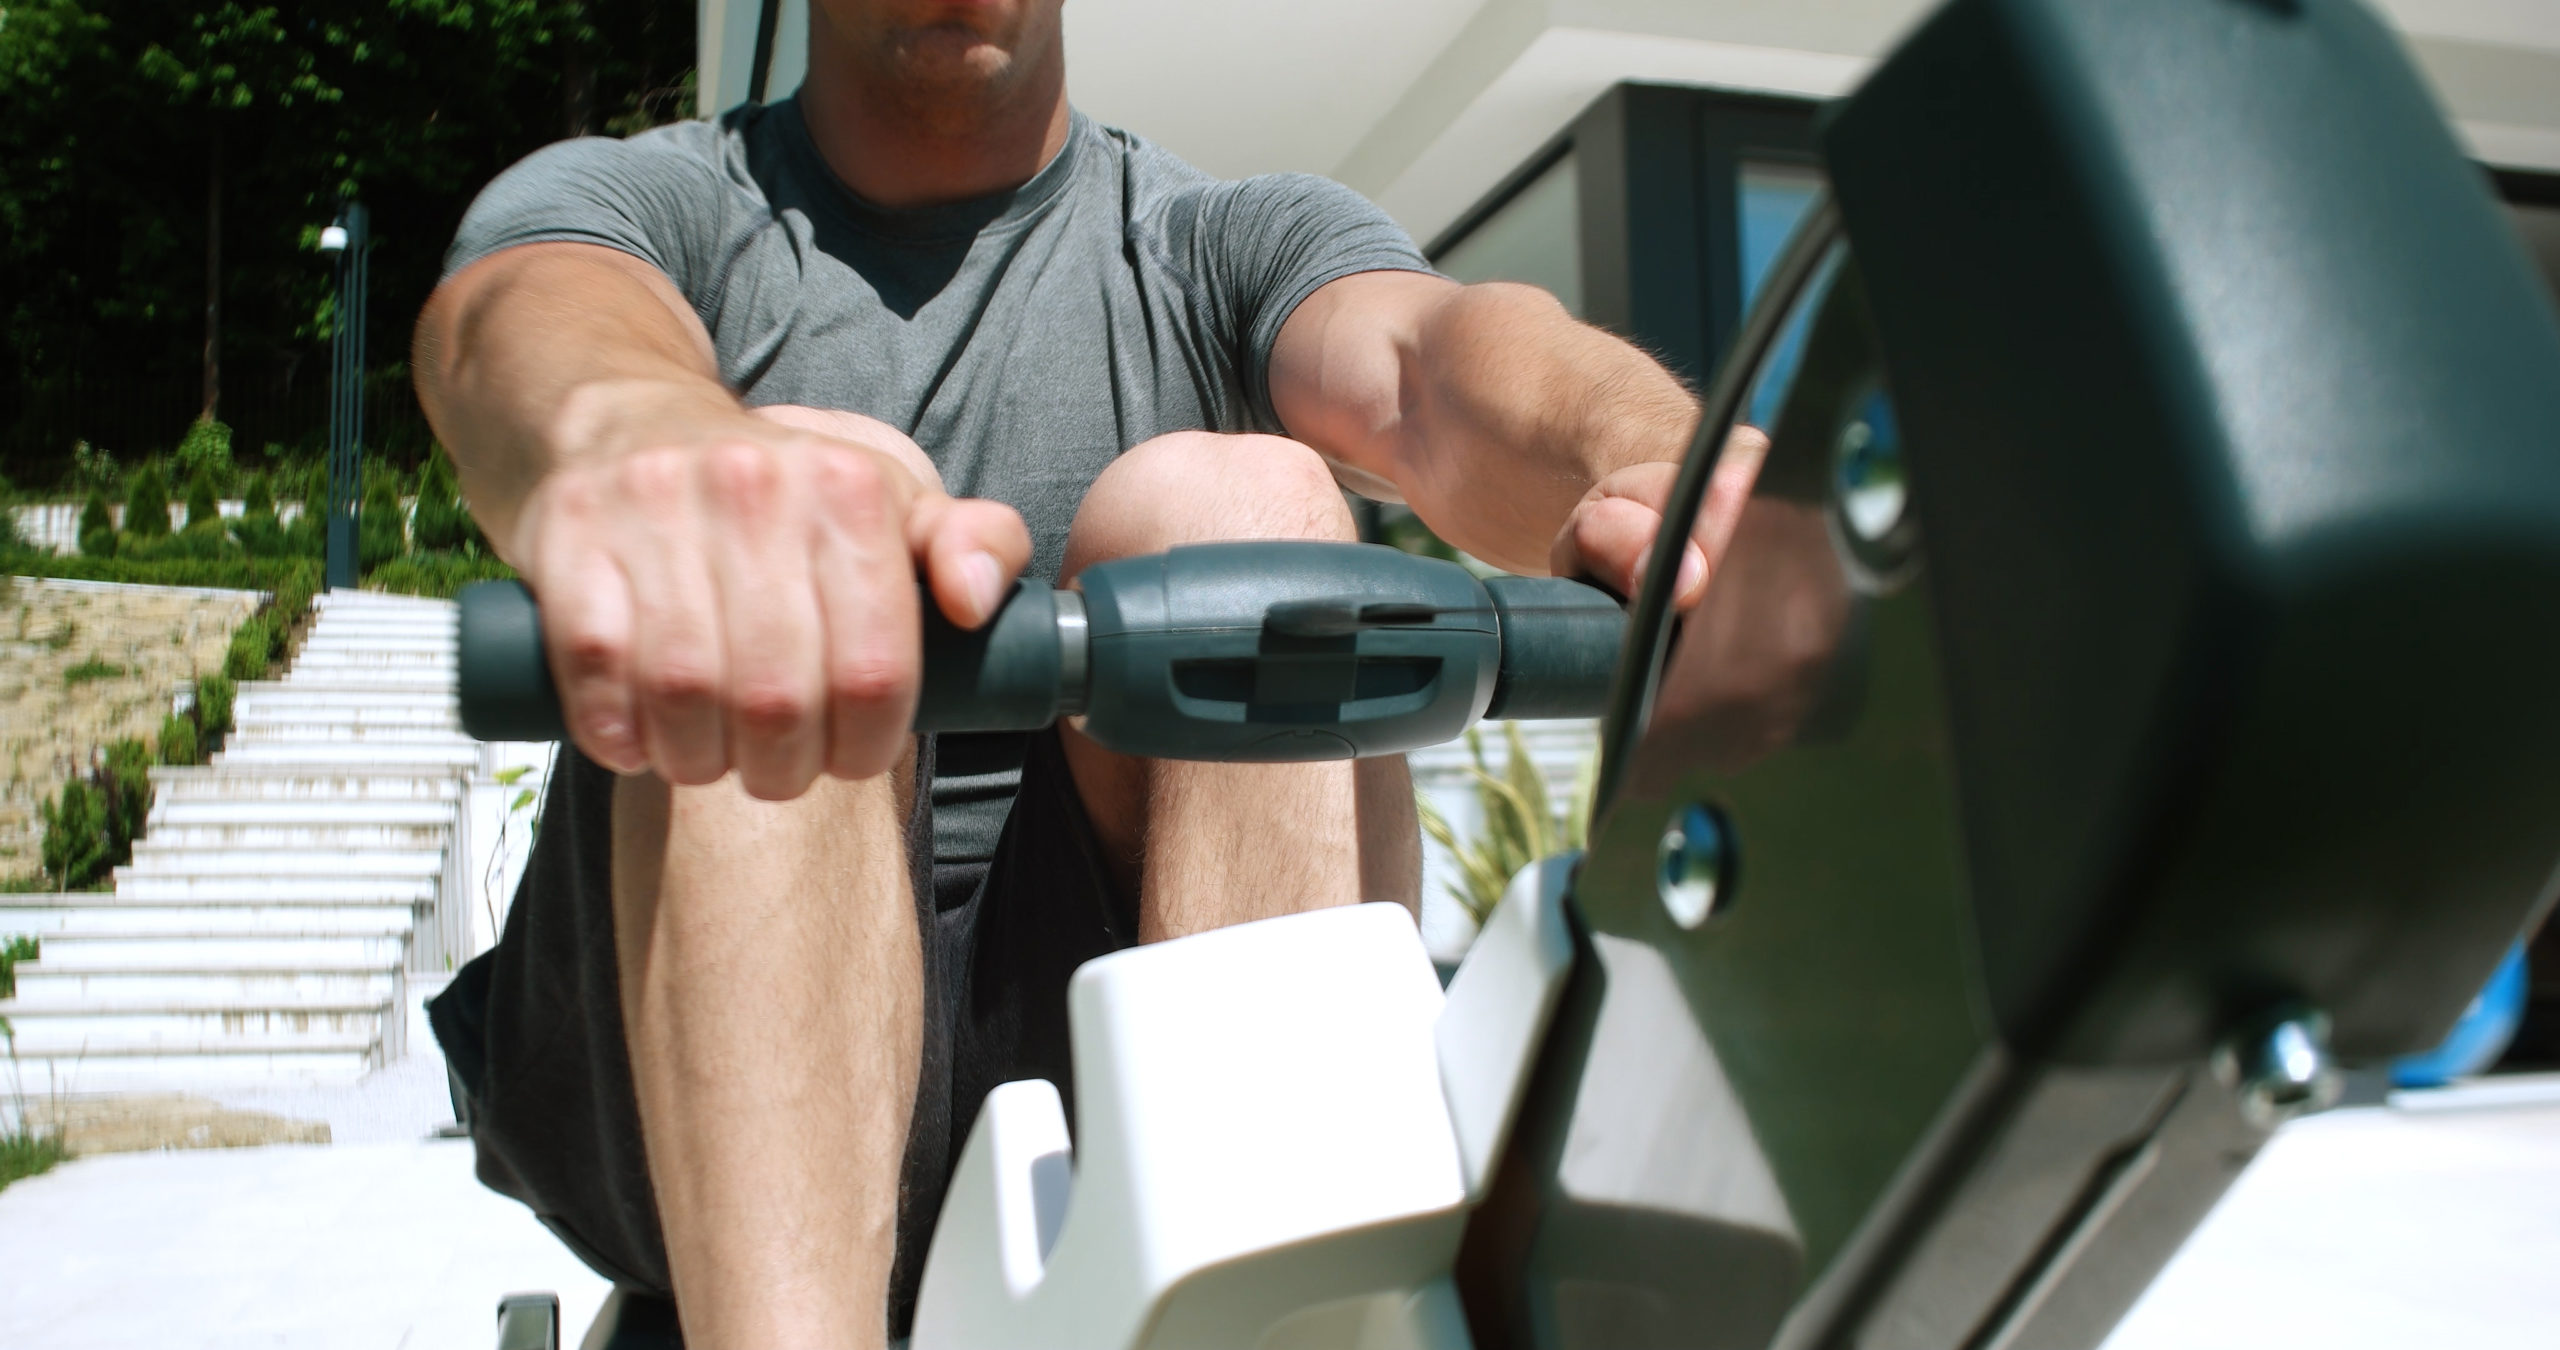 hydrow rowing machine review